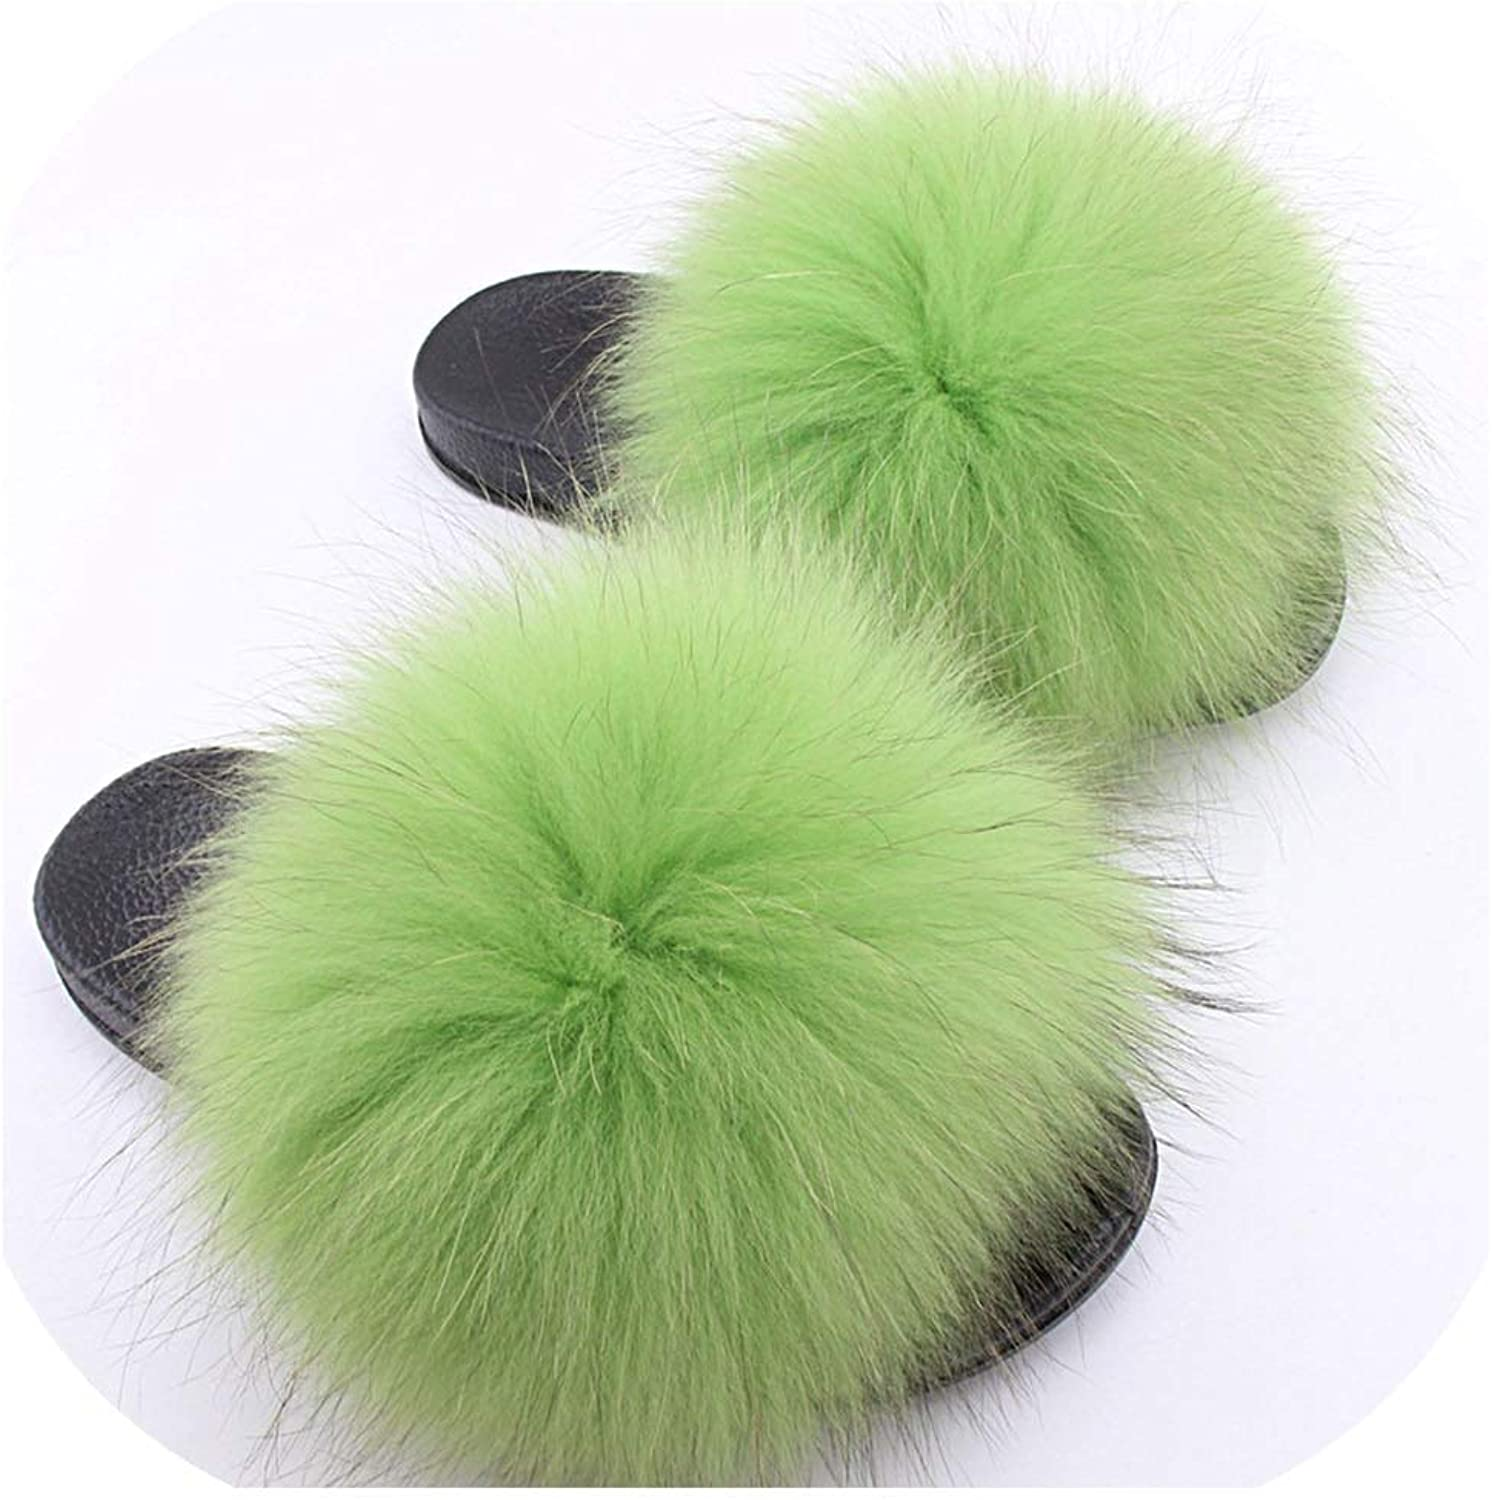 Real Slippers Women Sliders Casual Hair Flat Fluffy Home Big Size 45 Furry Flip Fl,